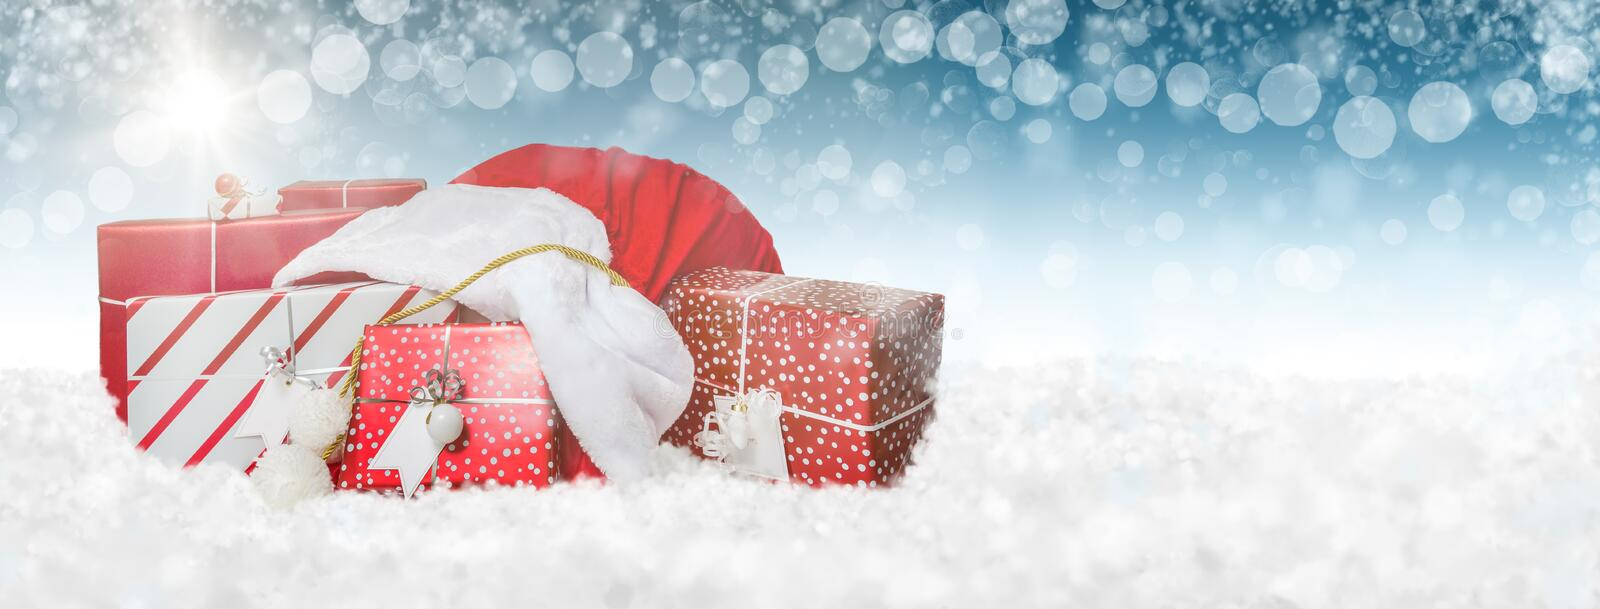 Santa Gift Bag in Snow Web Banner royalty free stock photos